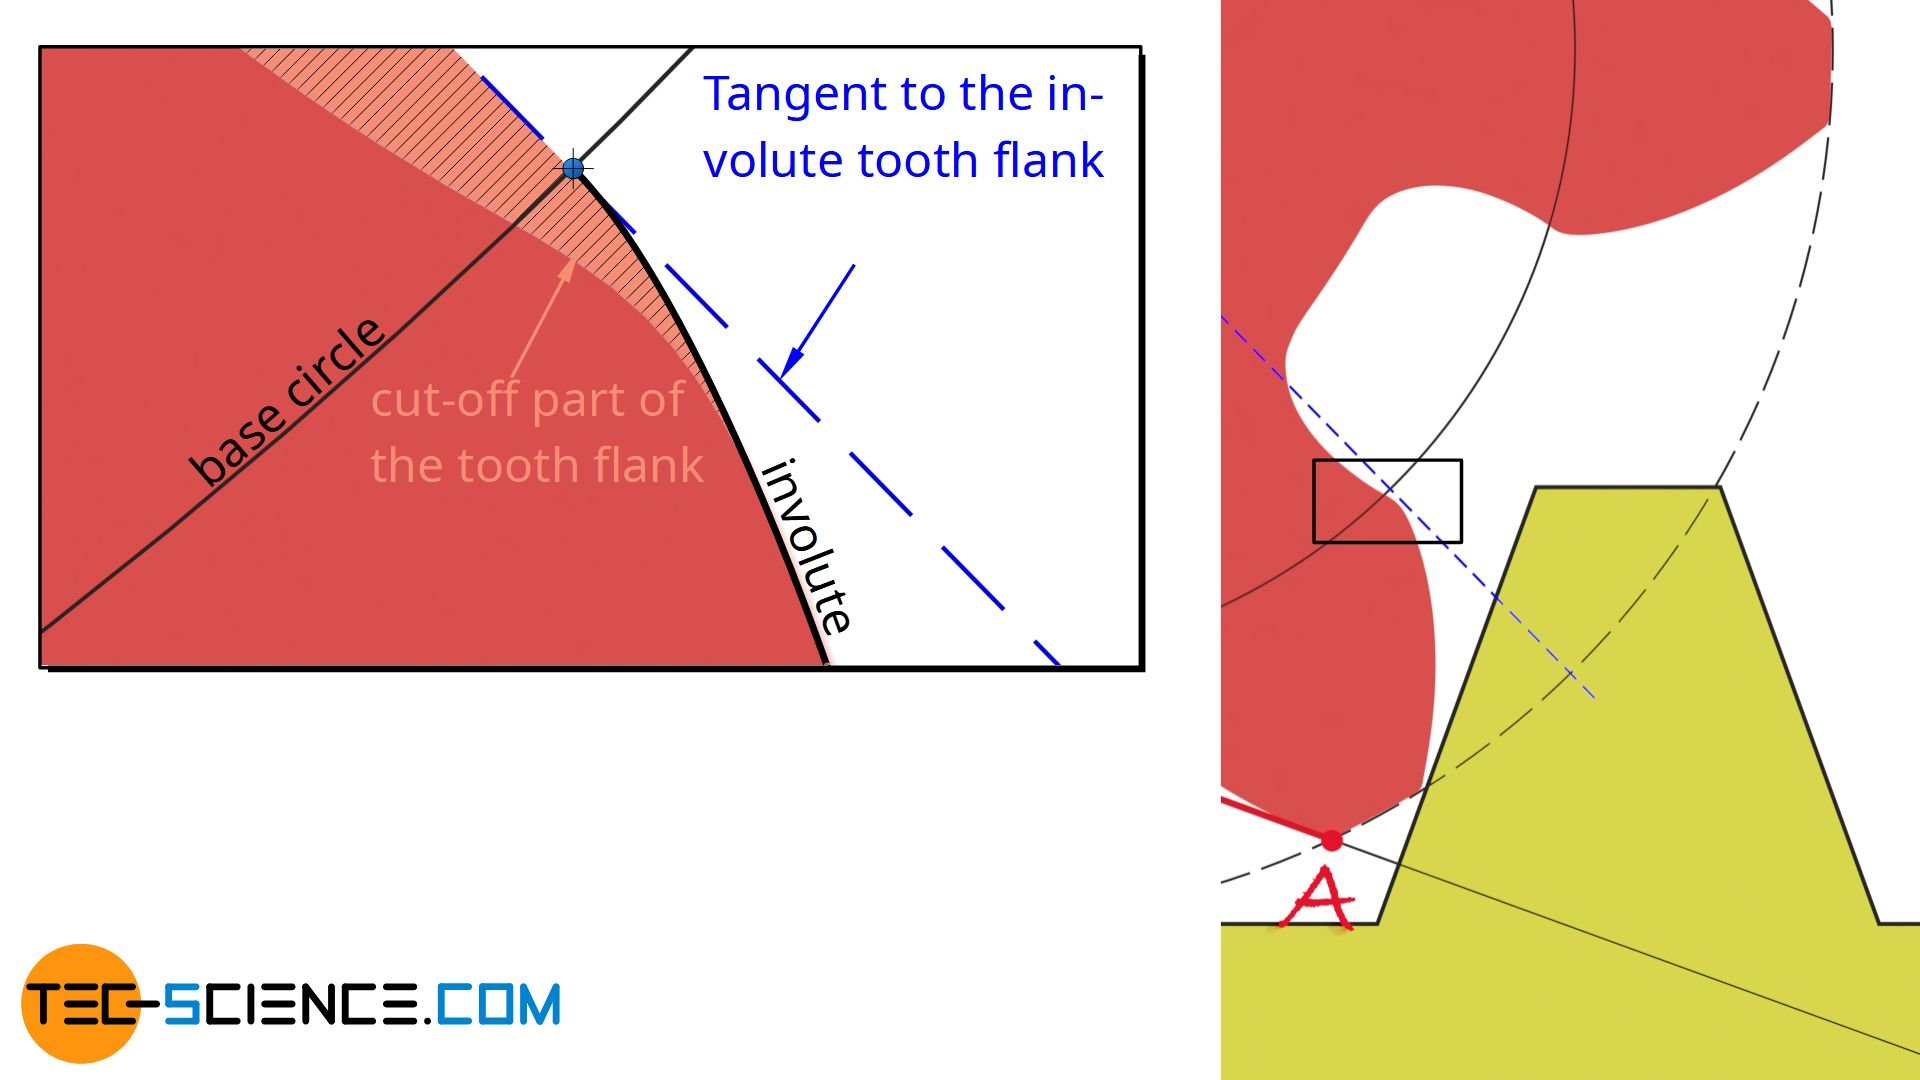 Cutting off a part of the tooth flank due to the undercut